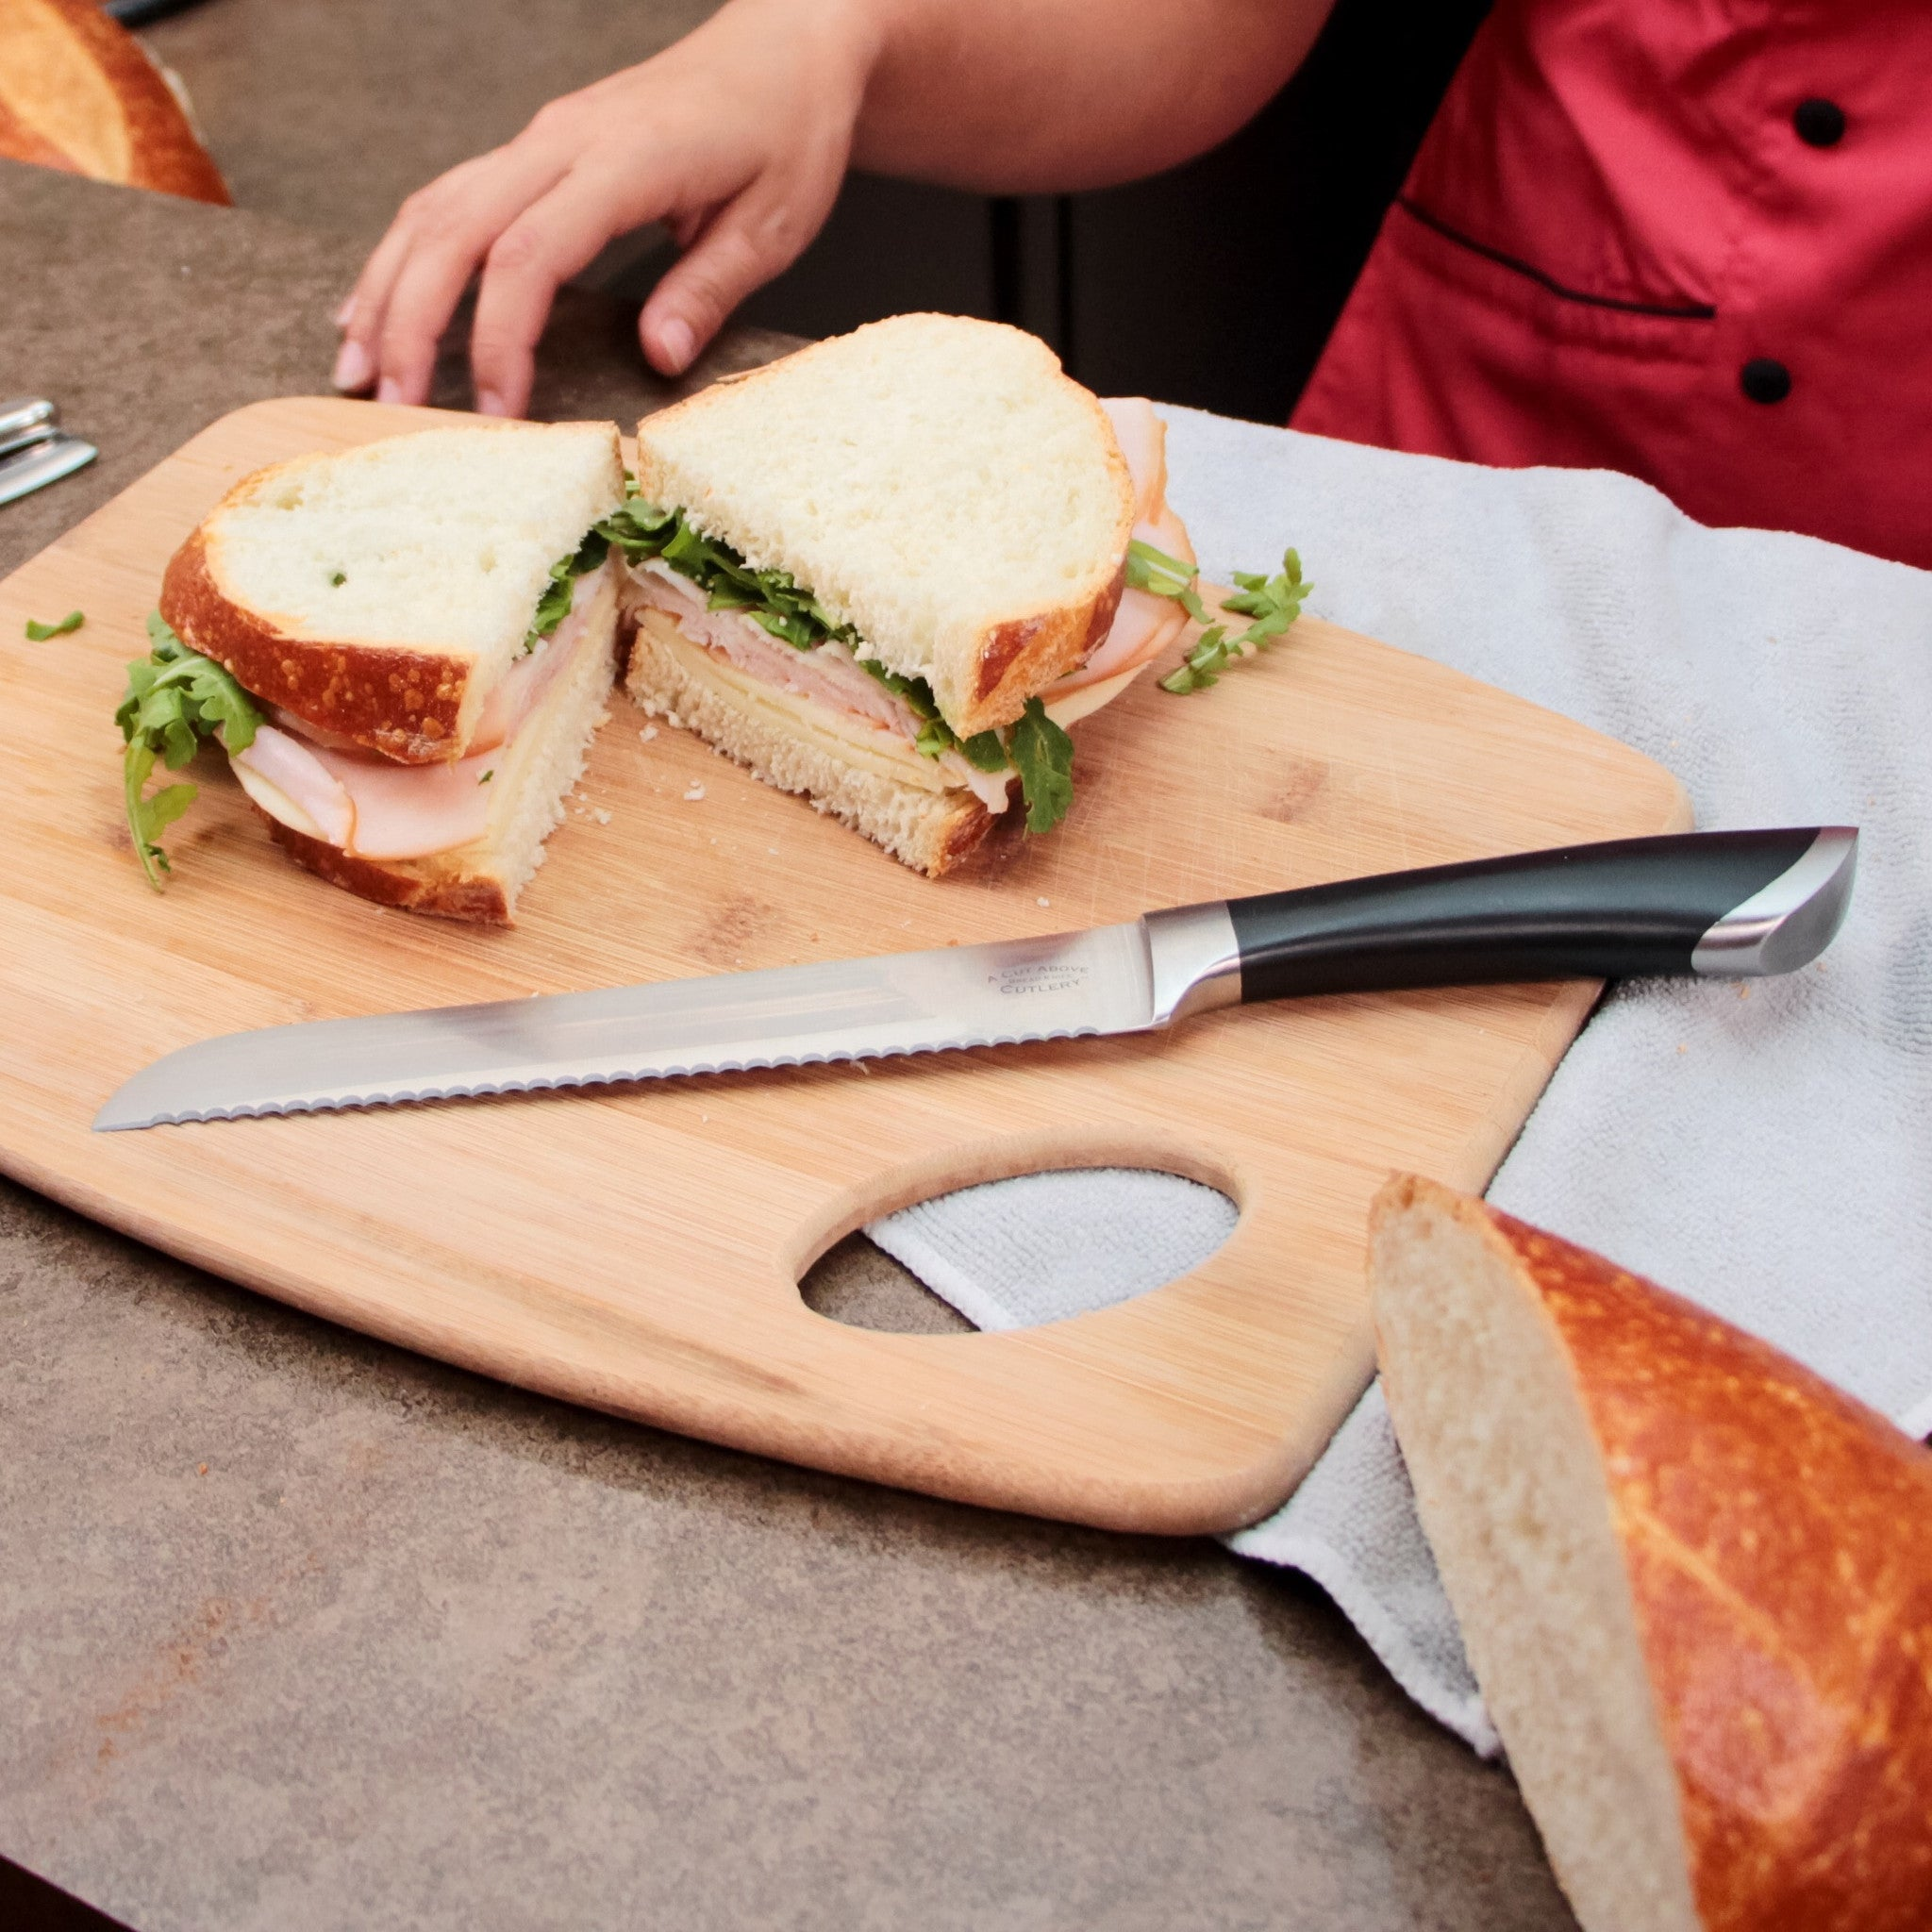 8 Inch Stainless Steel Serrated Bread Knife